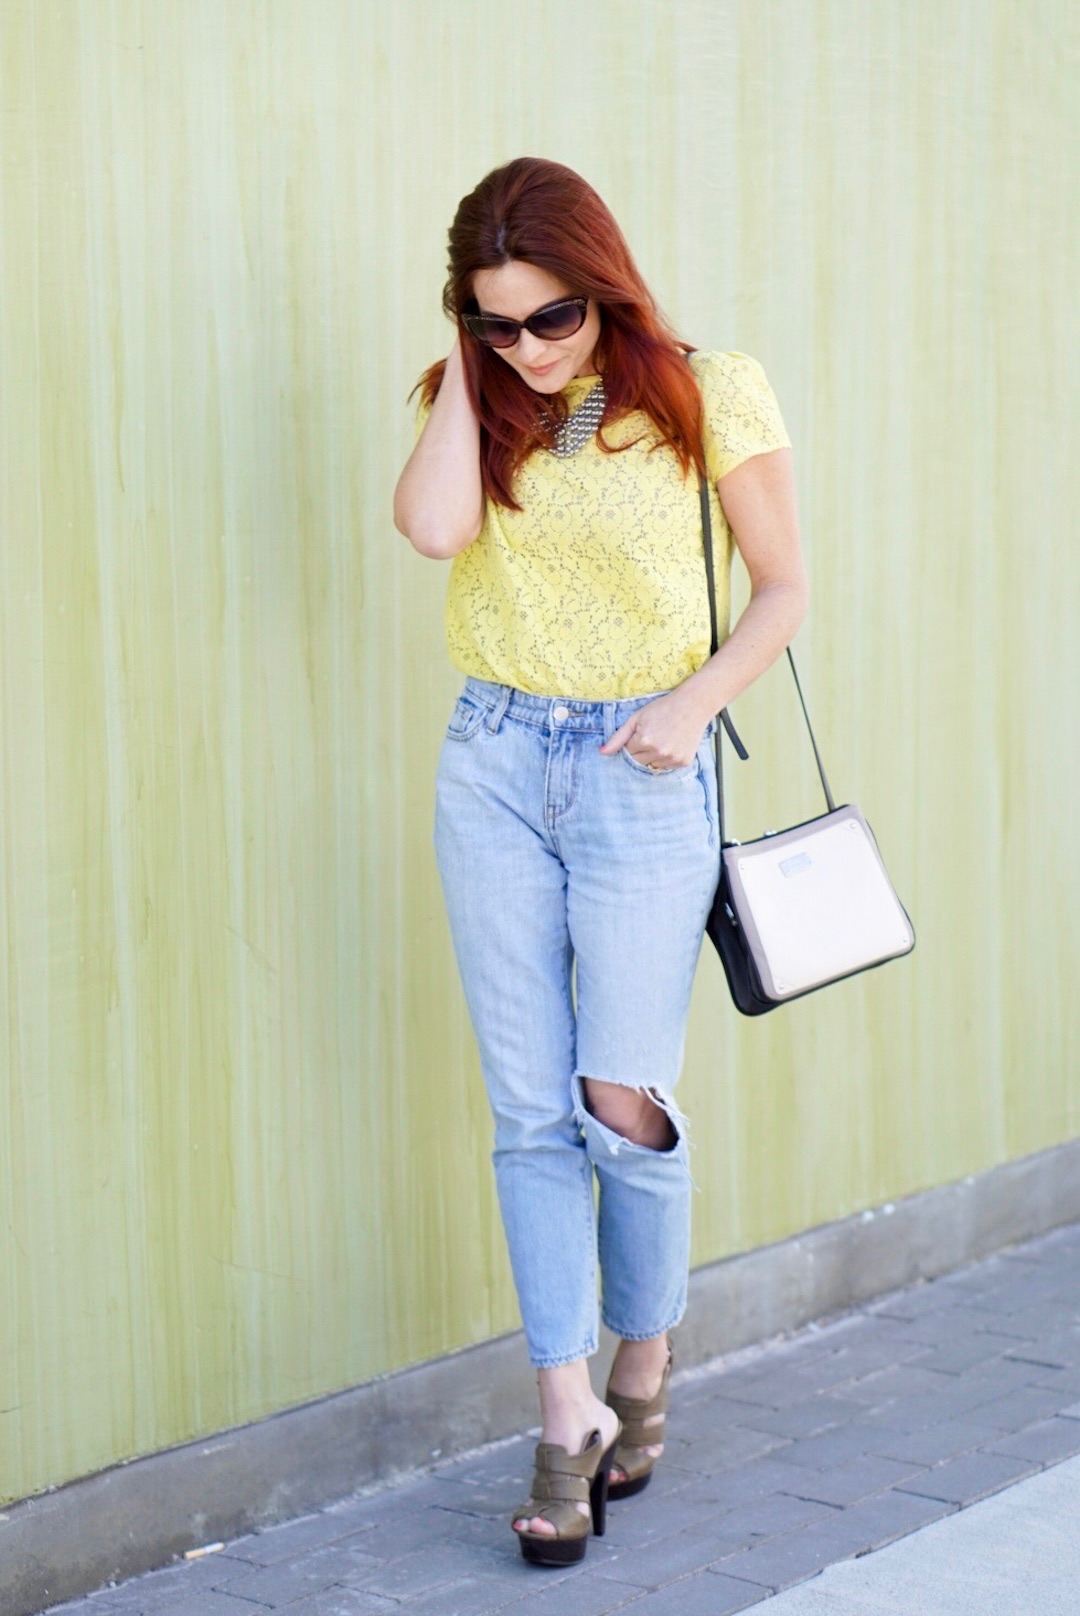 SPRING OUTFIT, YELLOW LACE TOP, LOFT, HIGH-WAISTED DENIM, OLD NAVY, CASUAL CHIC LOOK